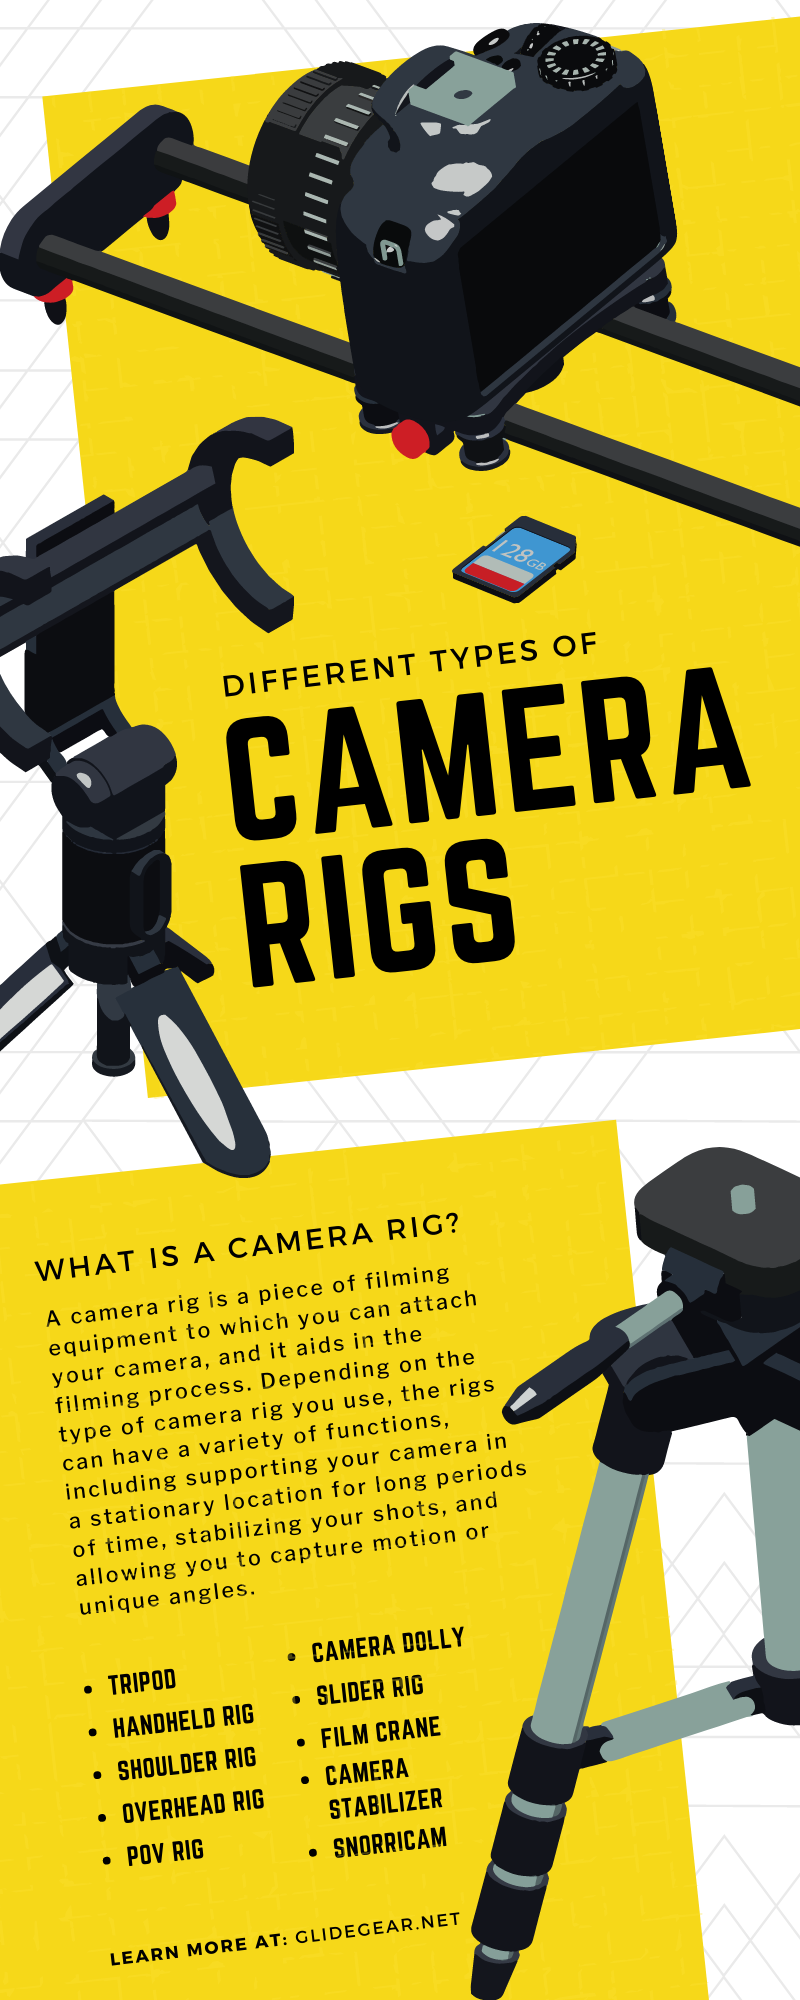 Different Types of Camera Rigs